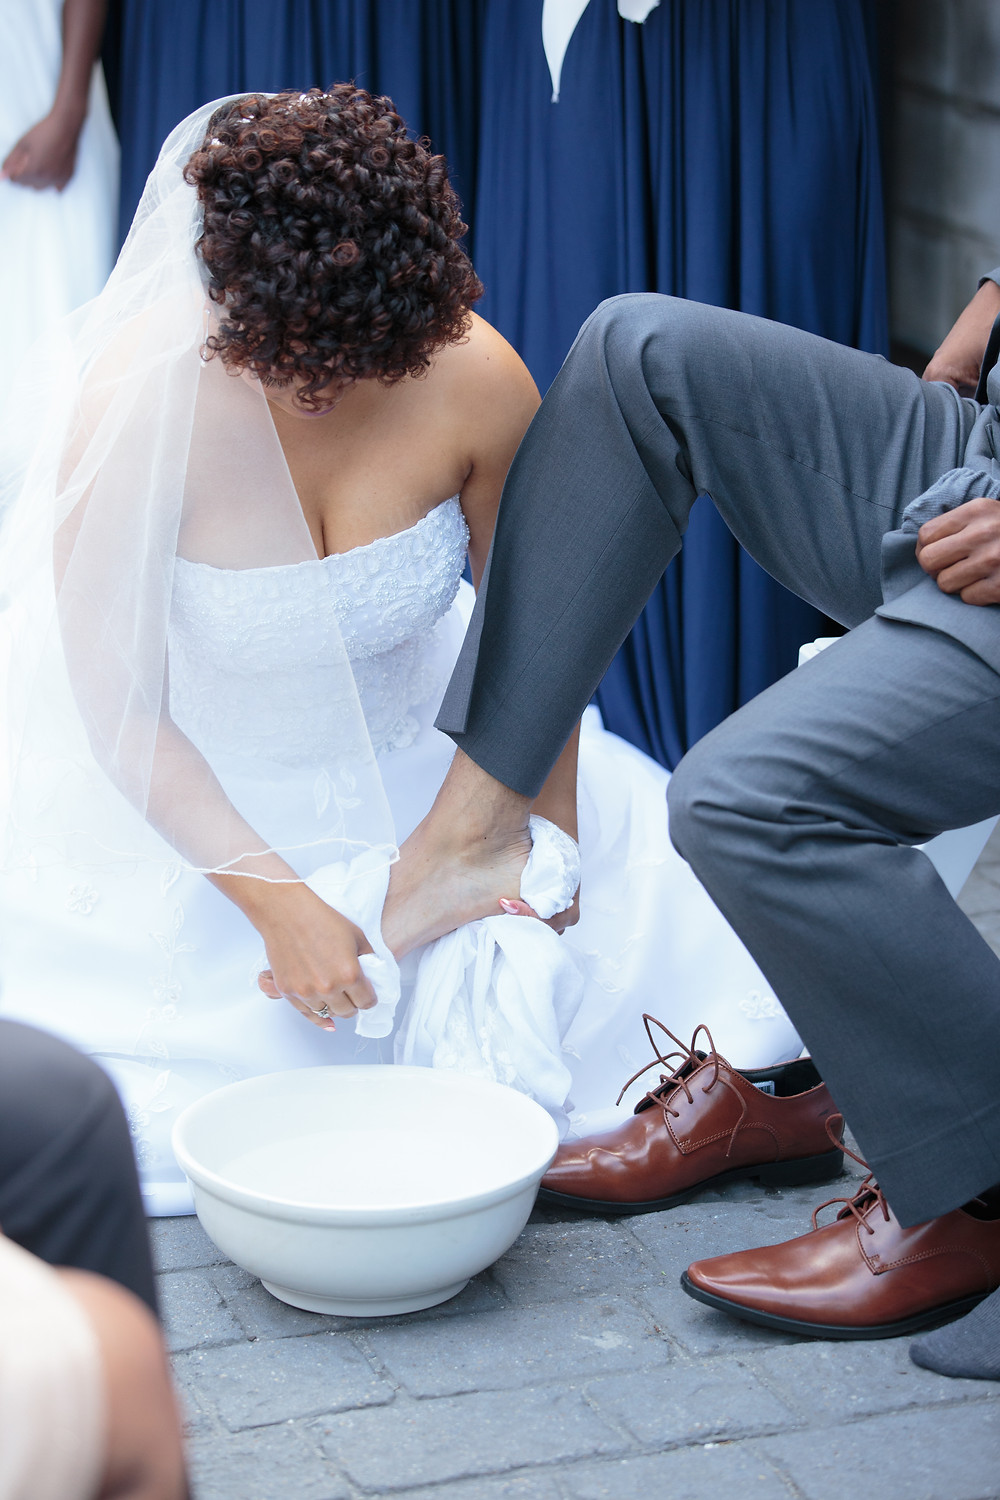 The bride and groom performing the feet washing tradition during the Sellers wedding ceremony at the Gallery O on H in Washington DC.